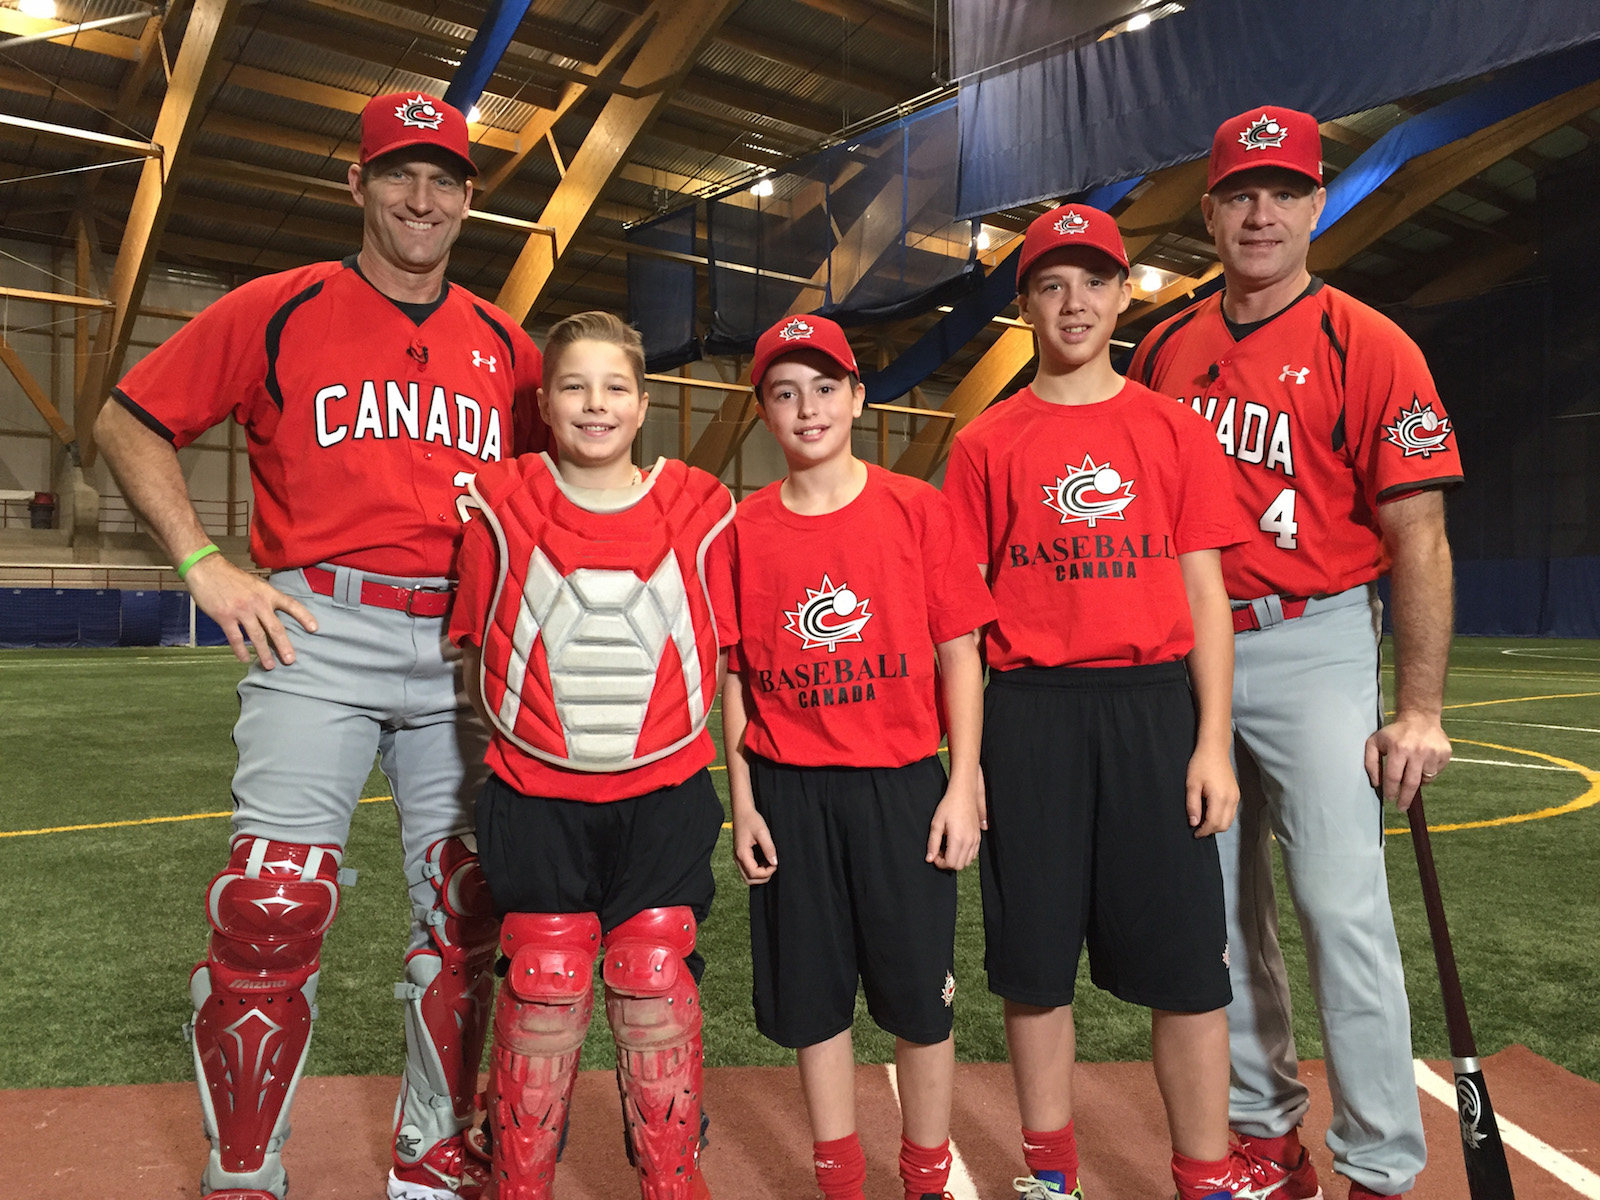 Baseball Canada Instructional videos now available!